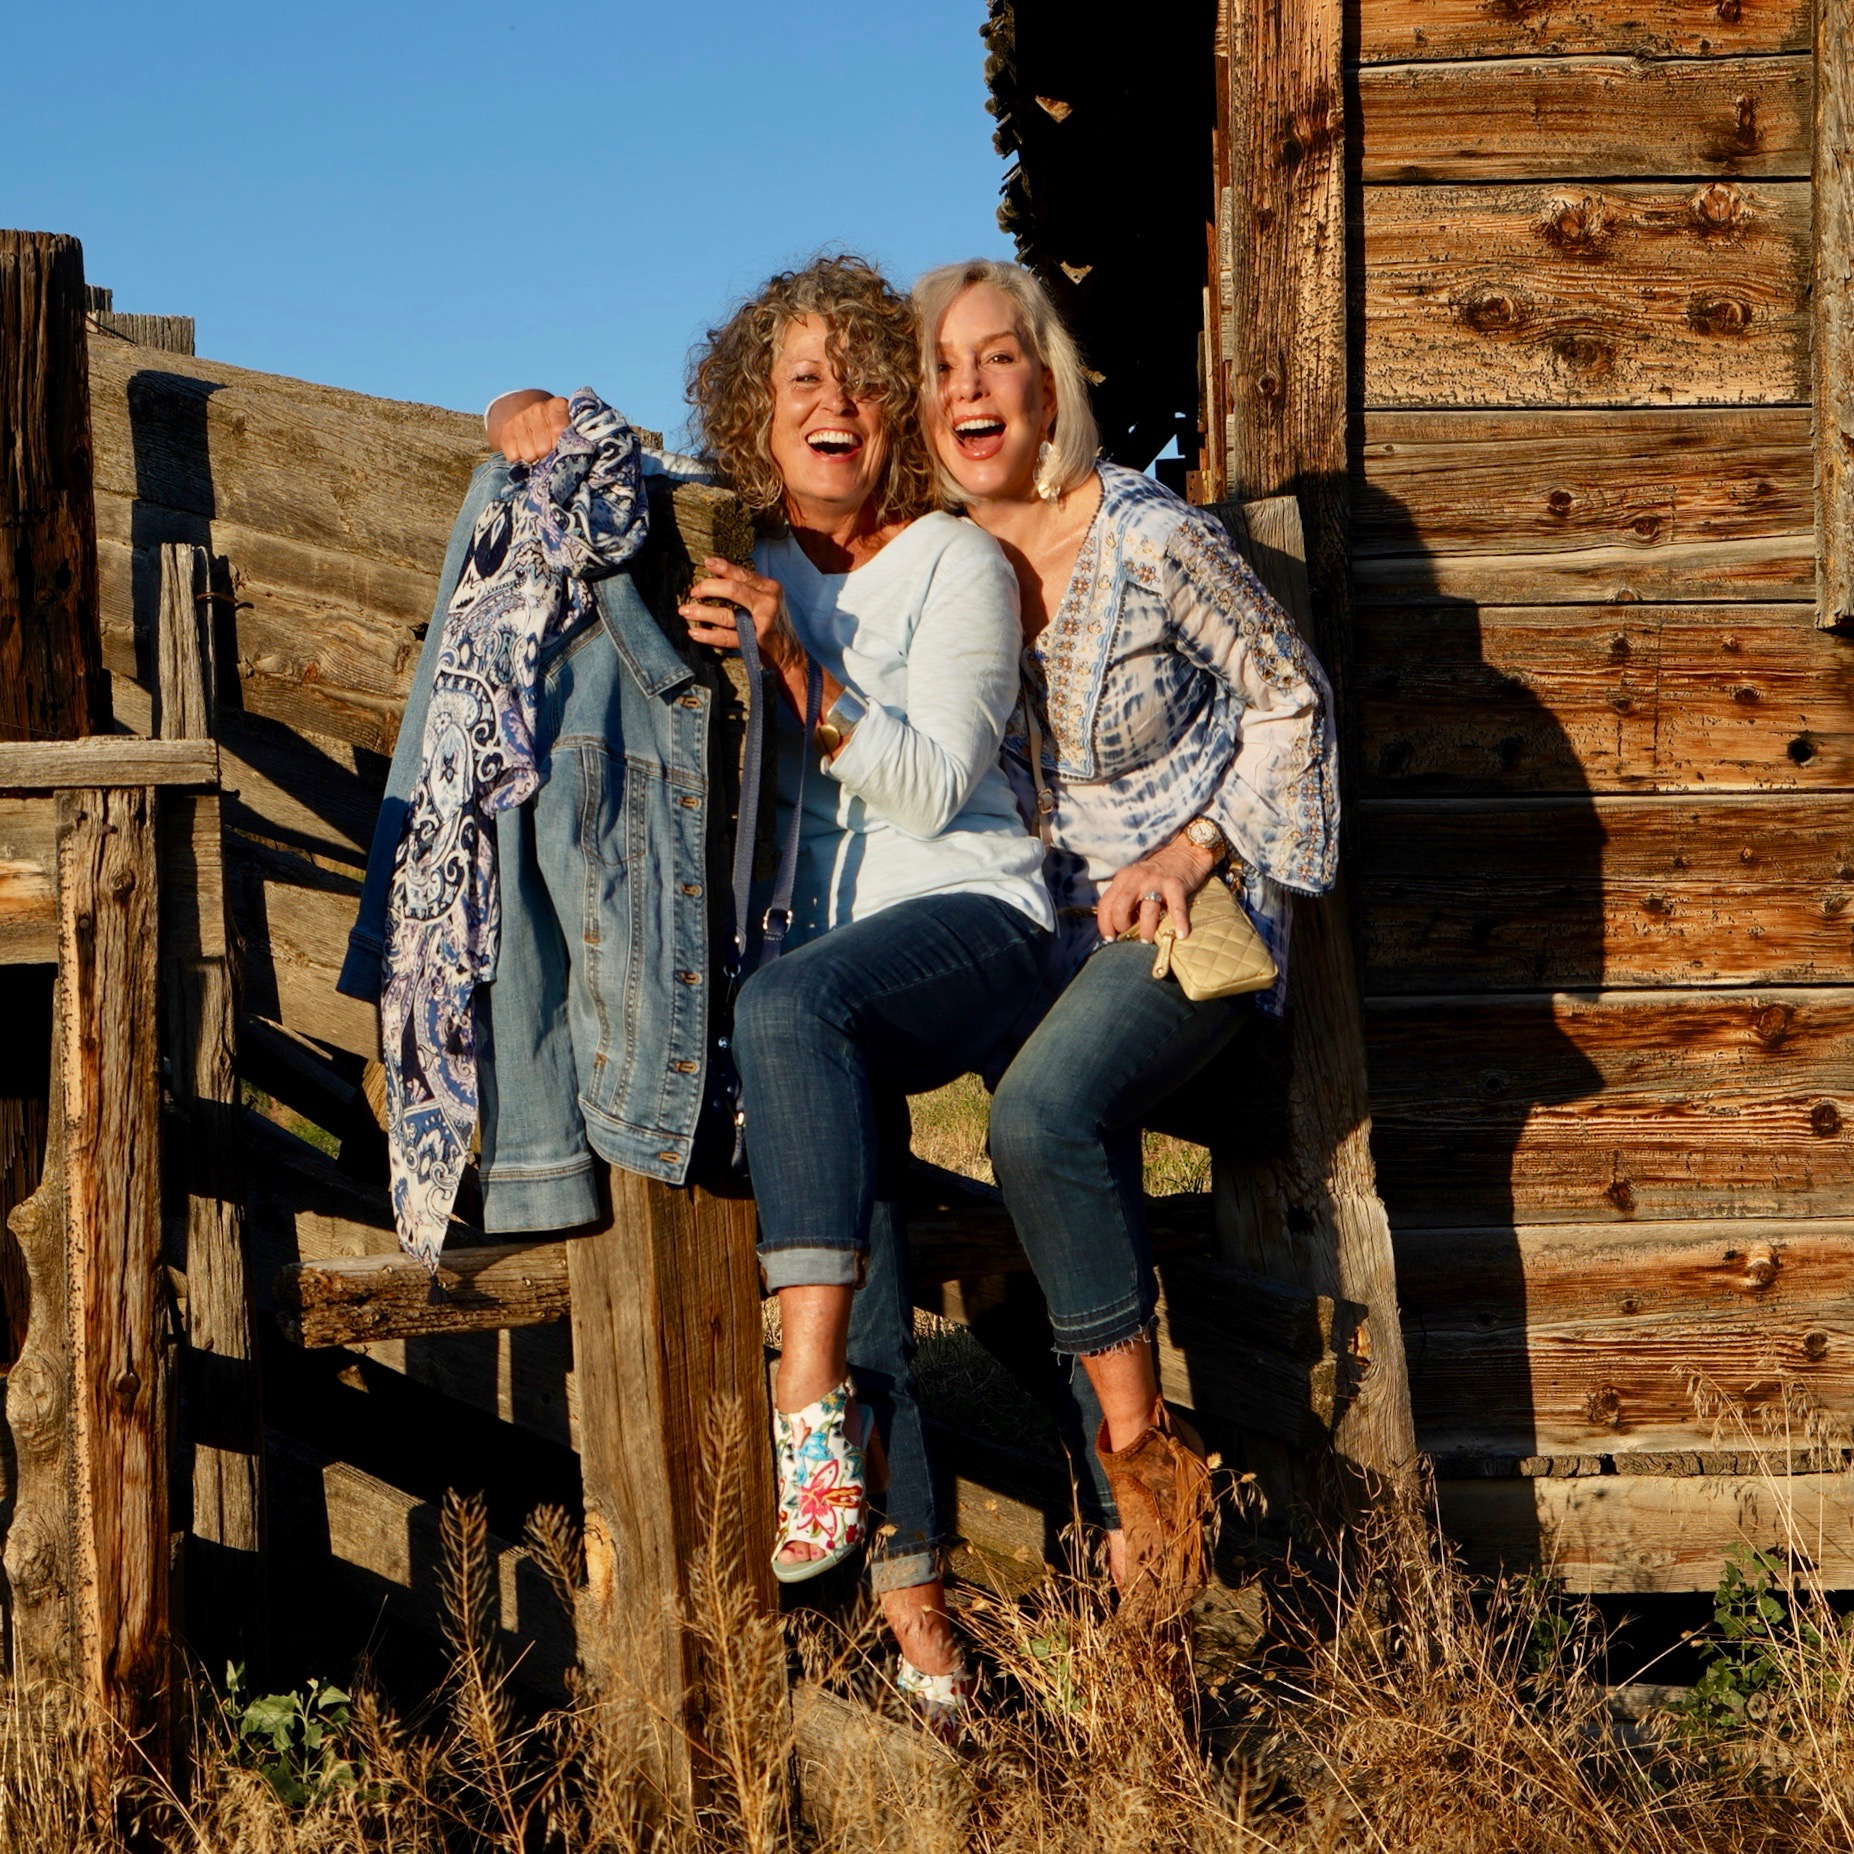 Ruthie and Sheree wearing jeans by a wood fence